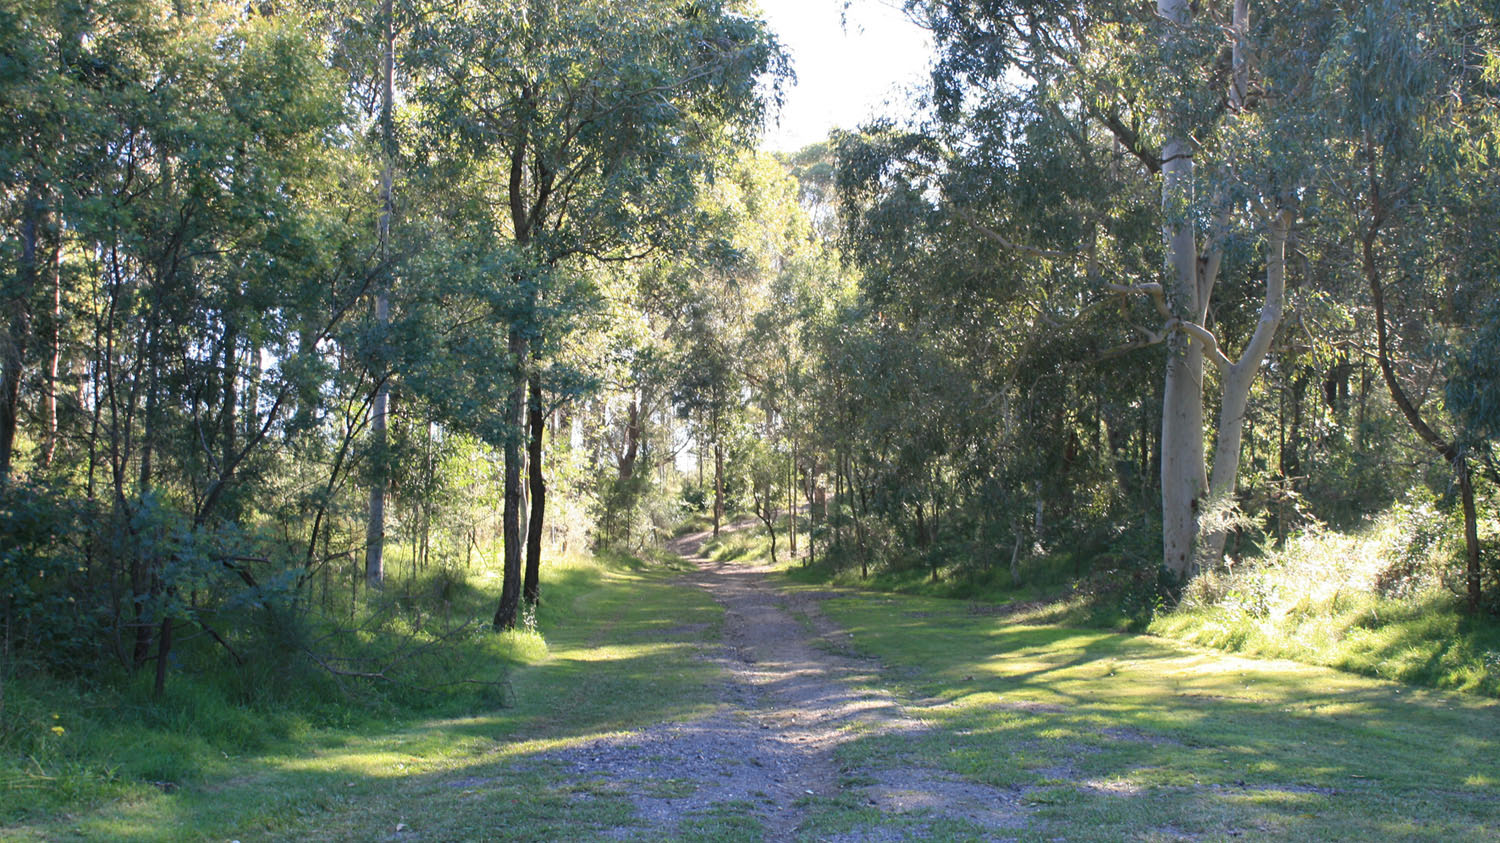 walking-track-through-bushland.jpg